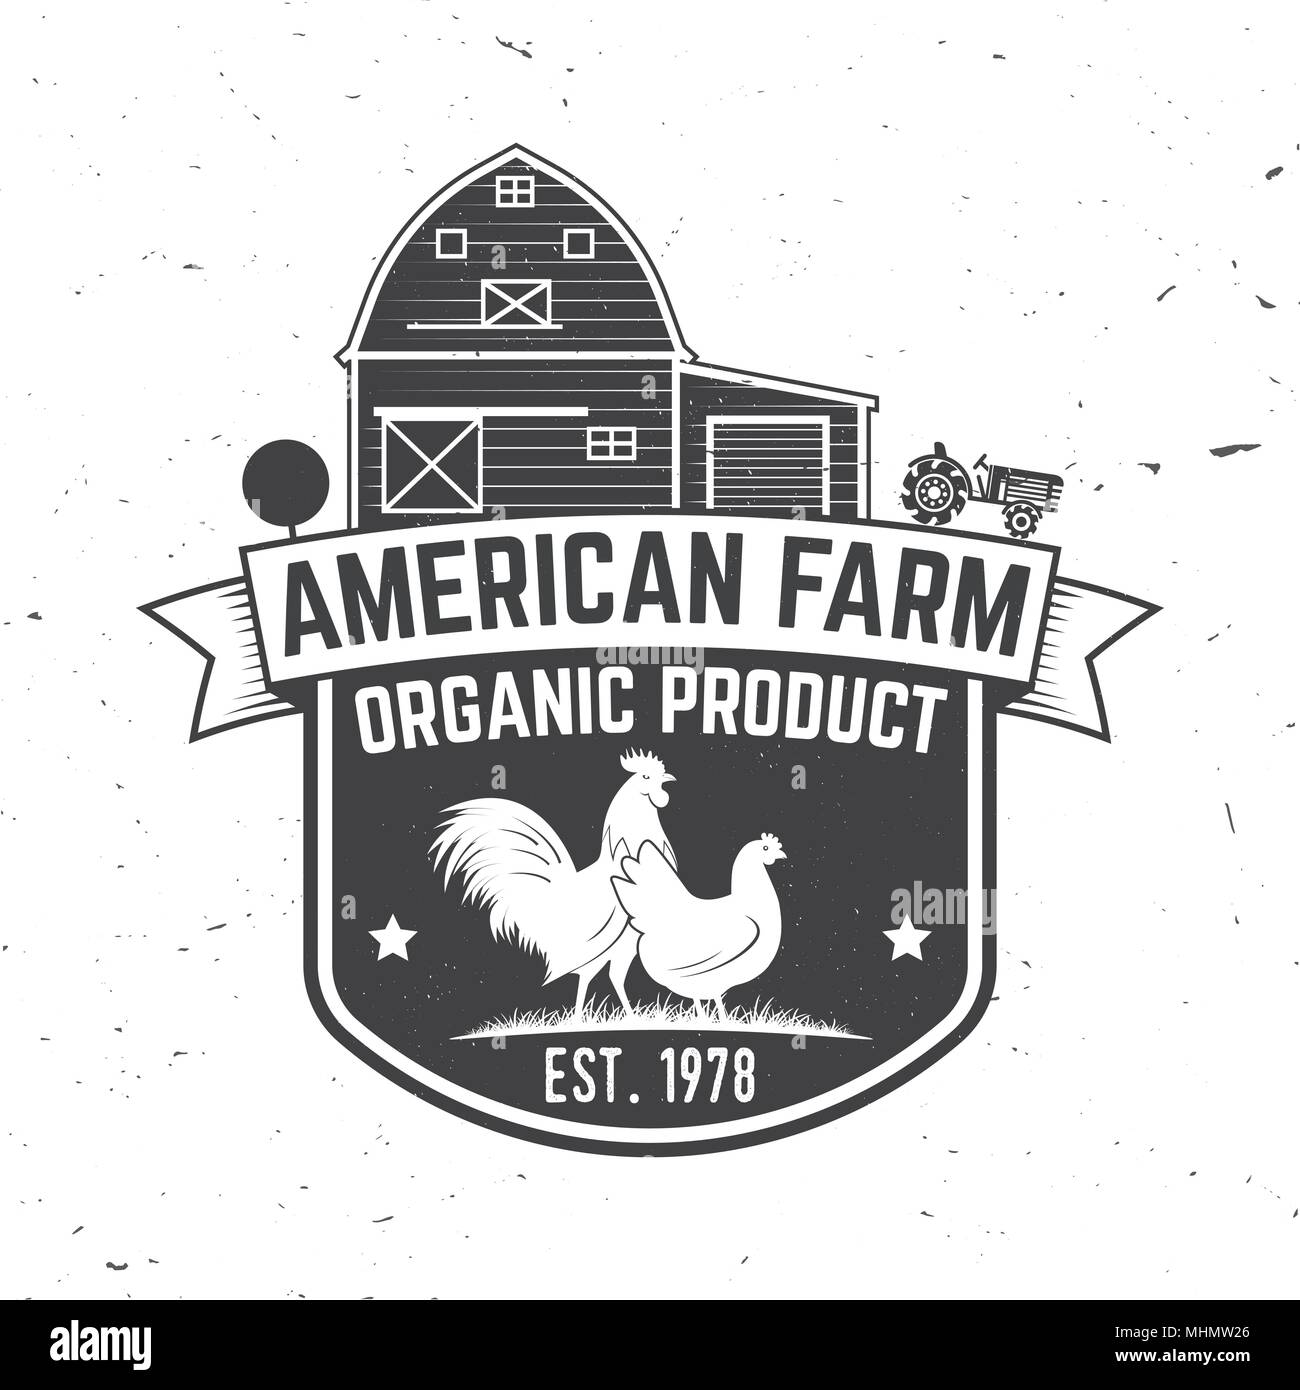 American Farm Badge or Label. Vector illustration. Vintage typography design with chickens silhouette. Elements on the theme of the chicken farming business. Farm insignia and patches isolated on white - Stock Vector